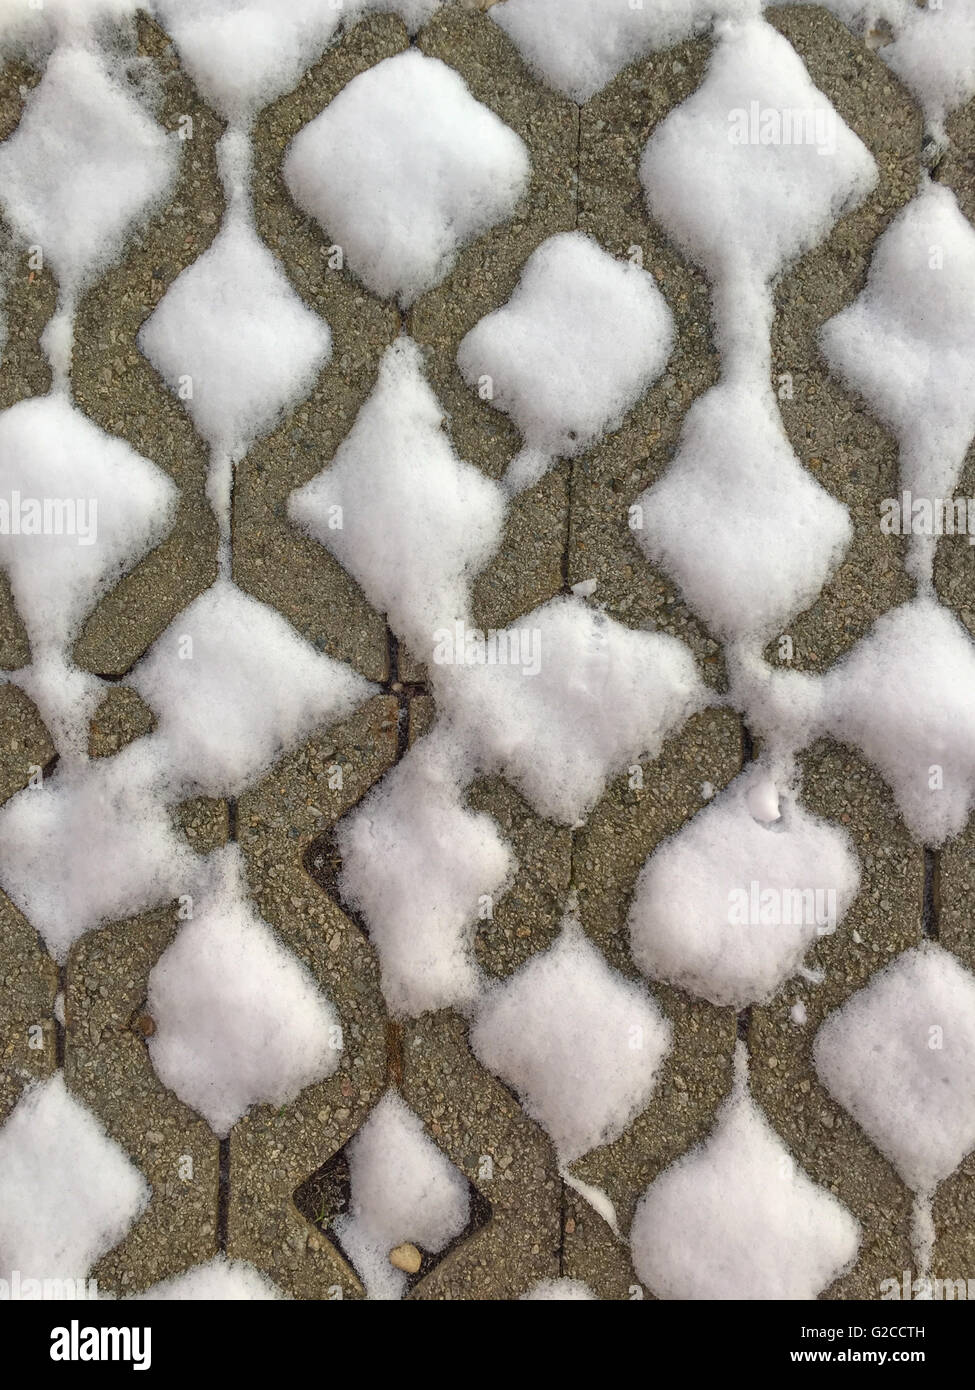 snow collected within the empty cavities of concrete bricks - Stock Image